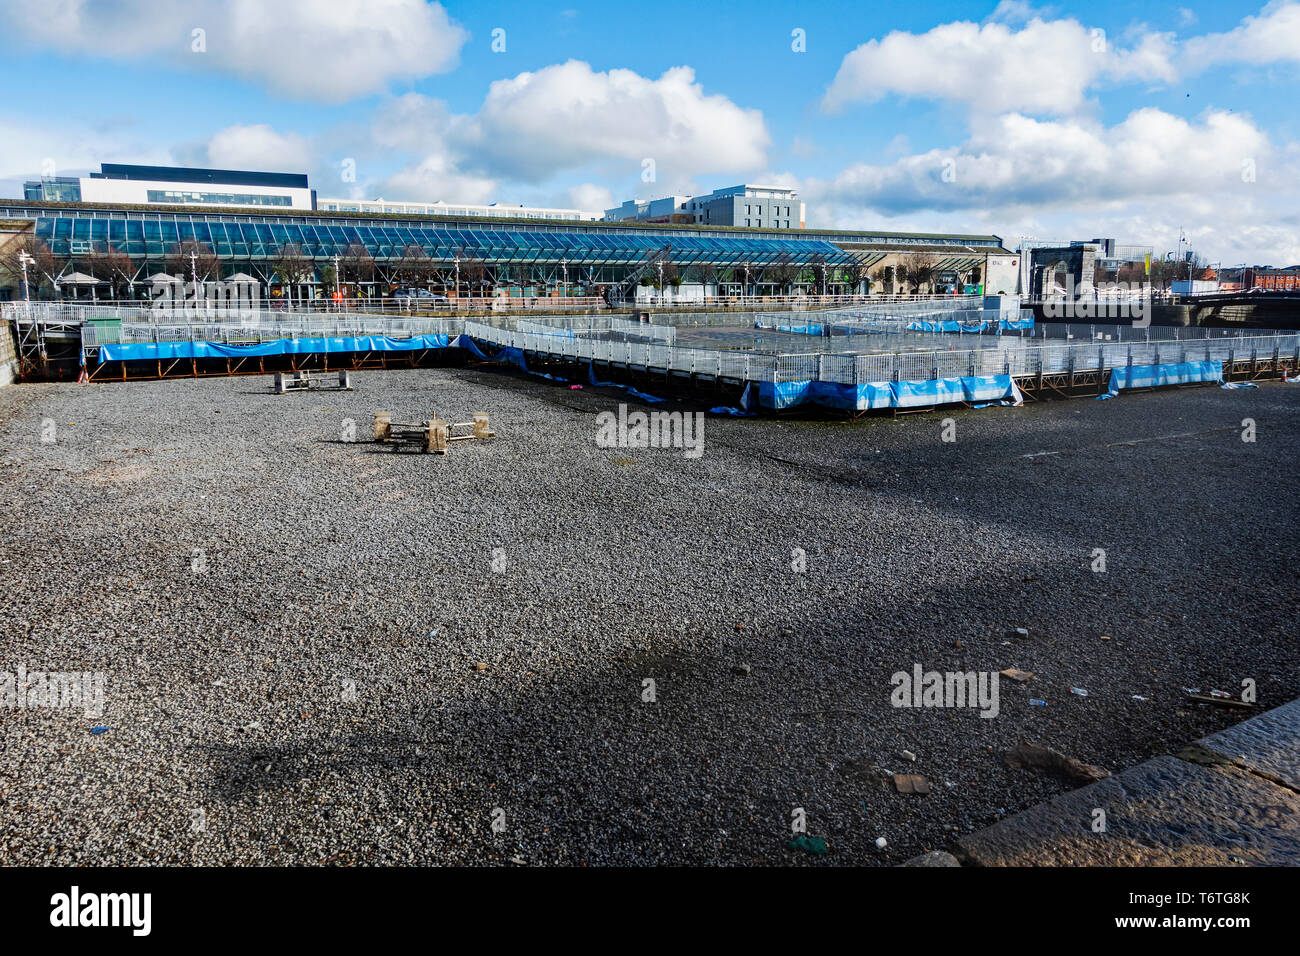 Dublin, Ireland -10 March, 2019. North docklands  Dublin, CHQ shopping mall and dry canal dock. - Stock Image